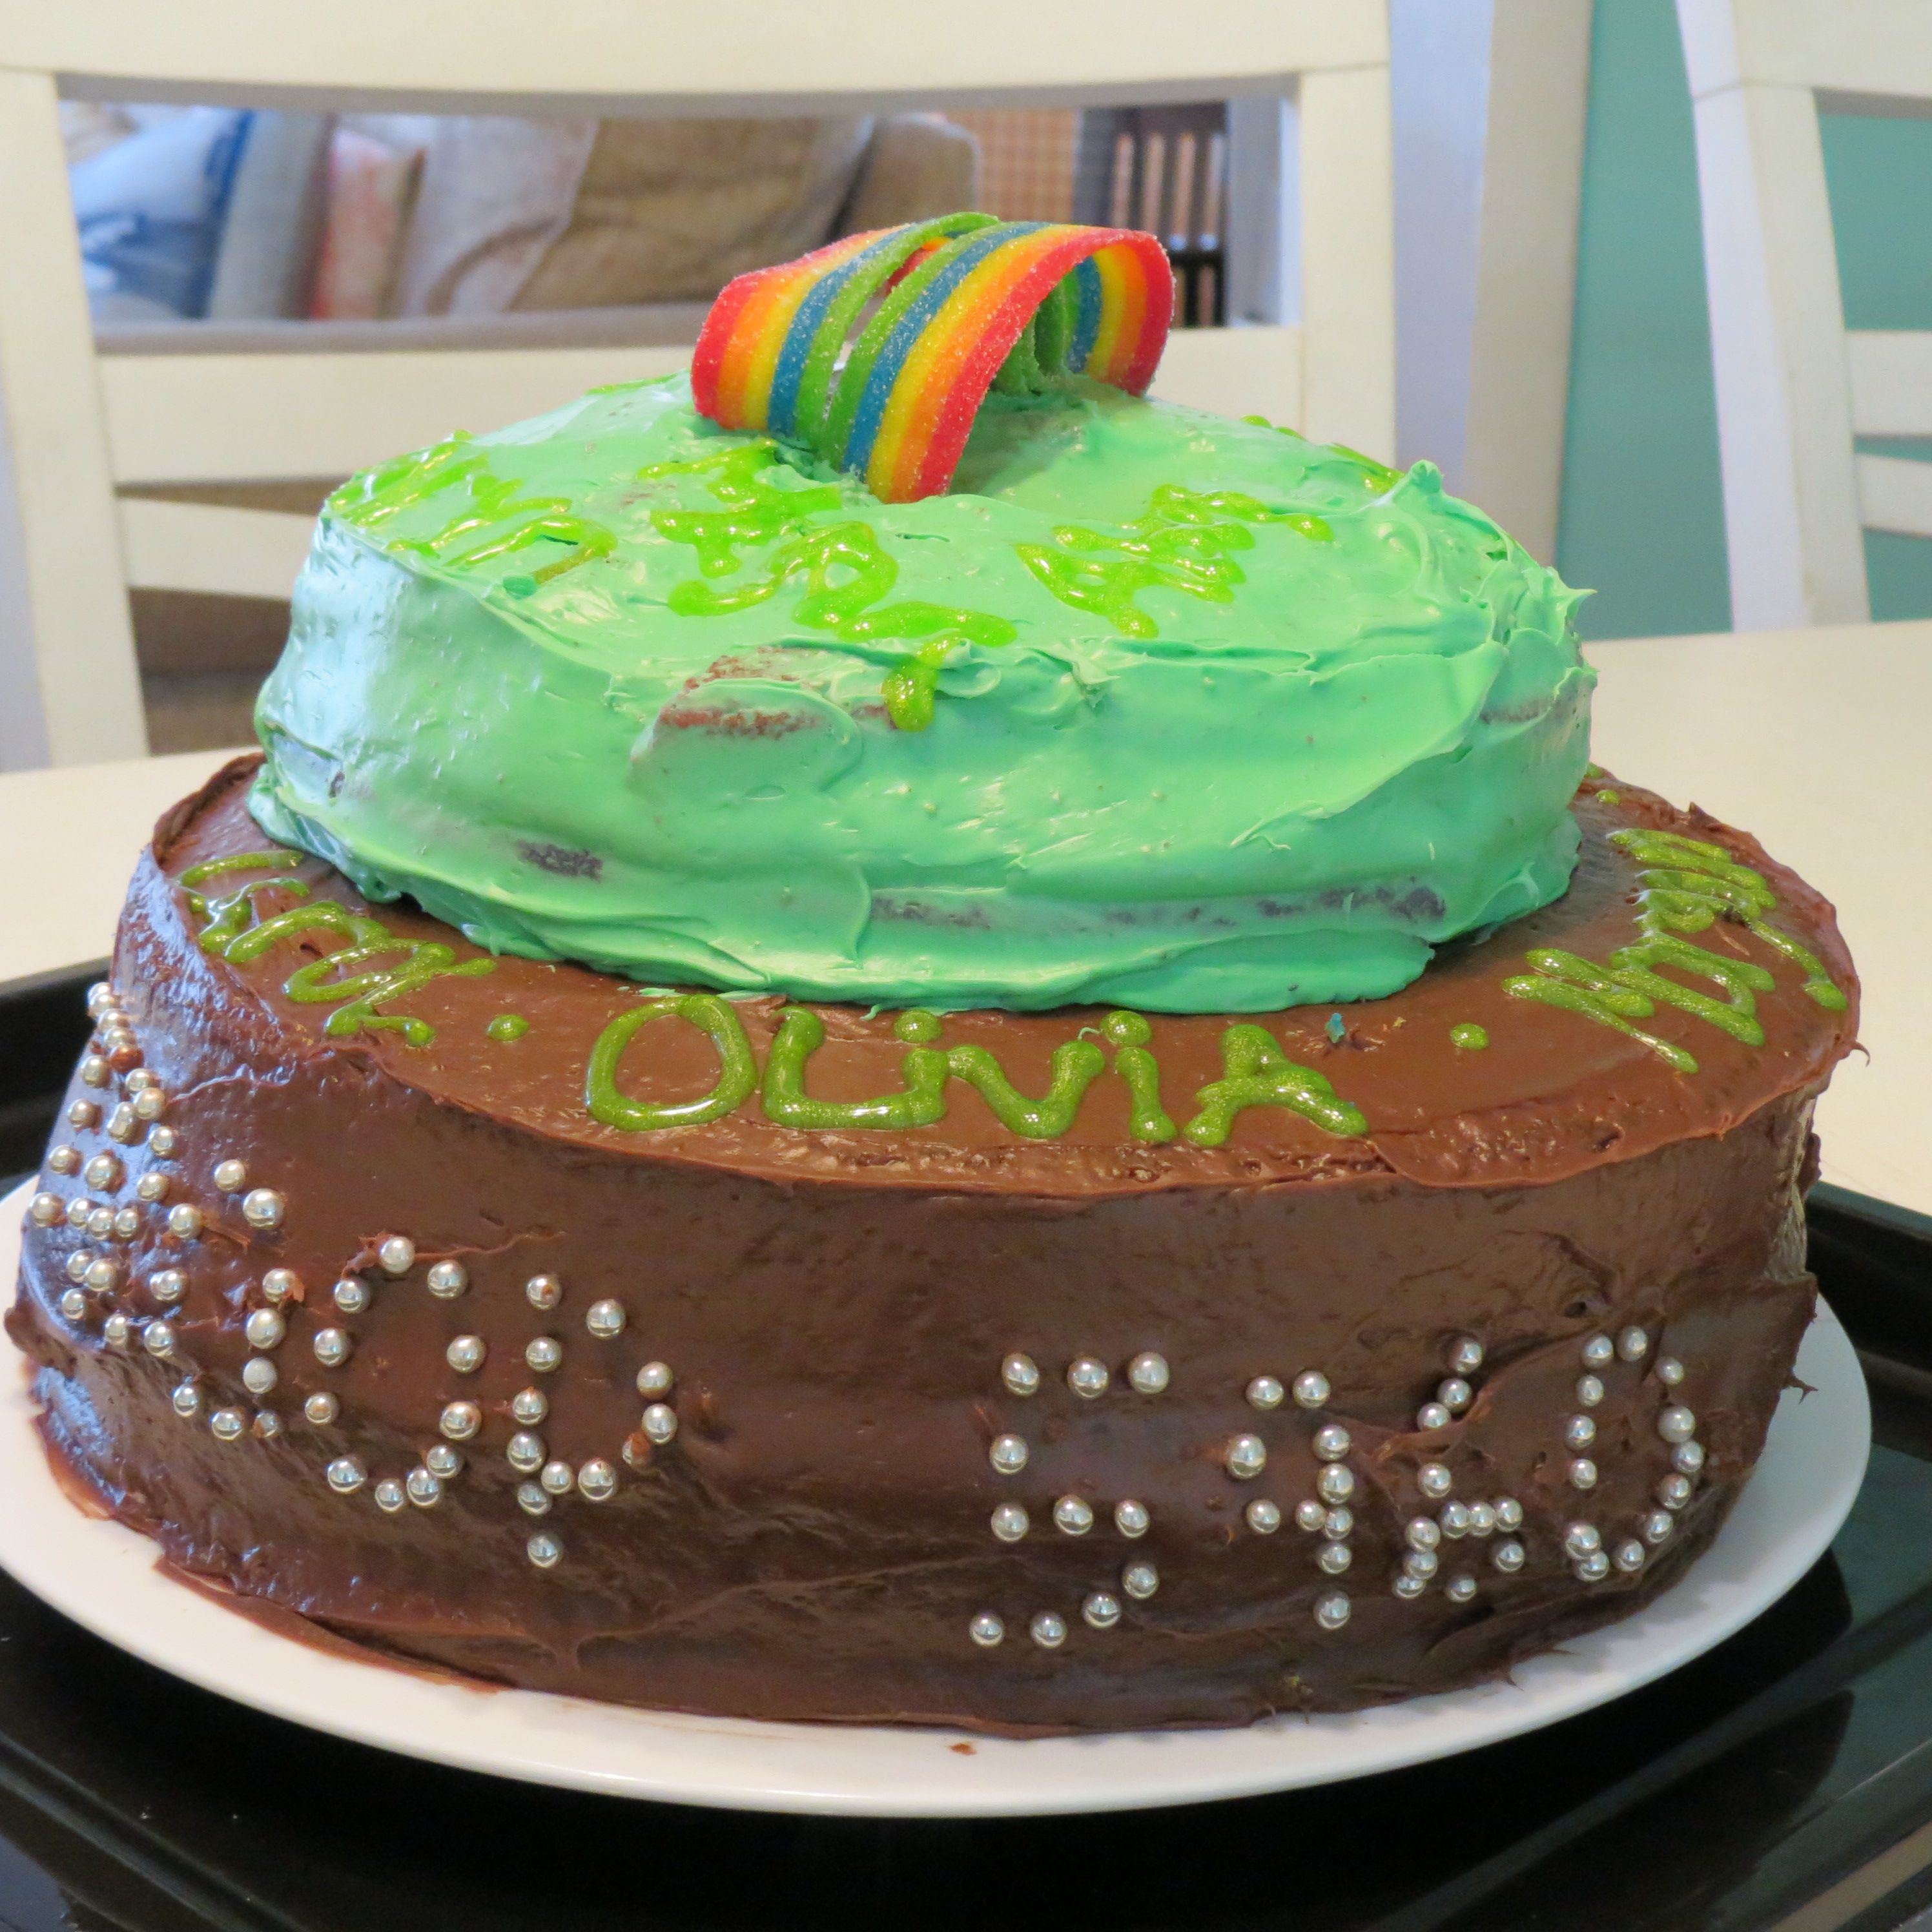 Girl Scout bridging cake. Troop bridged from Brownies to Juniors. All of their names were written on the cake.